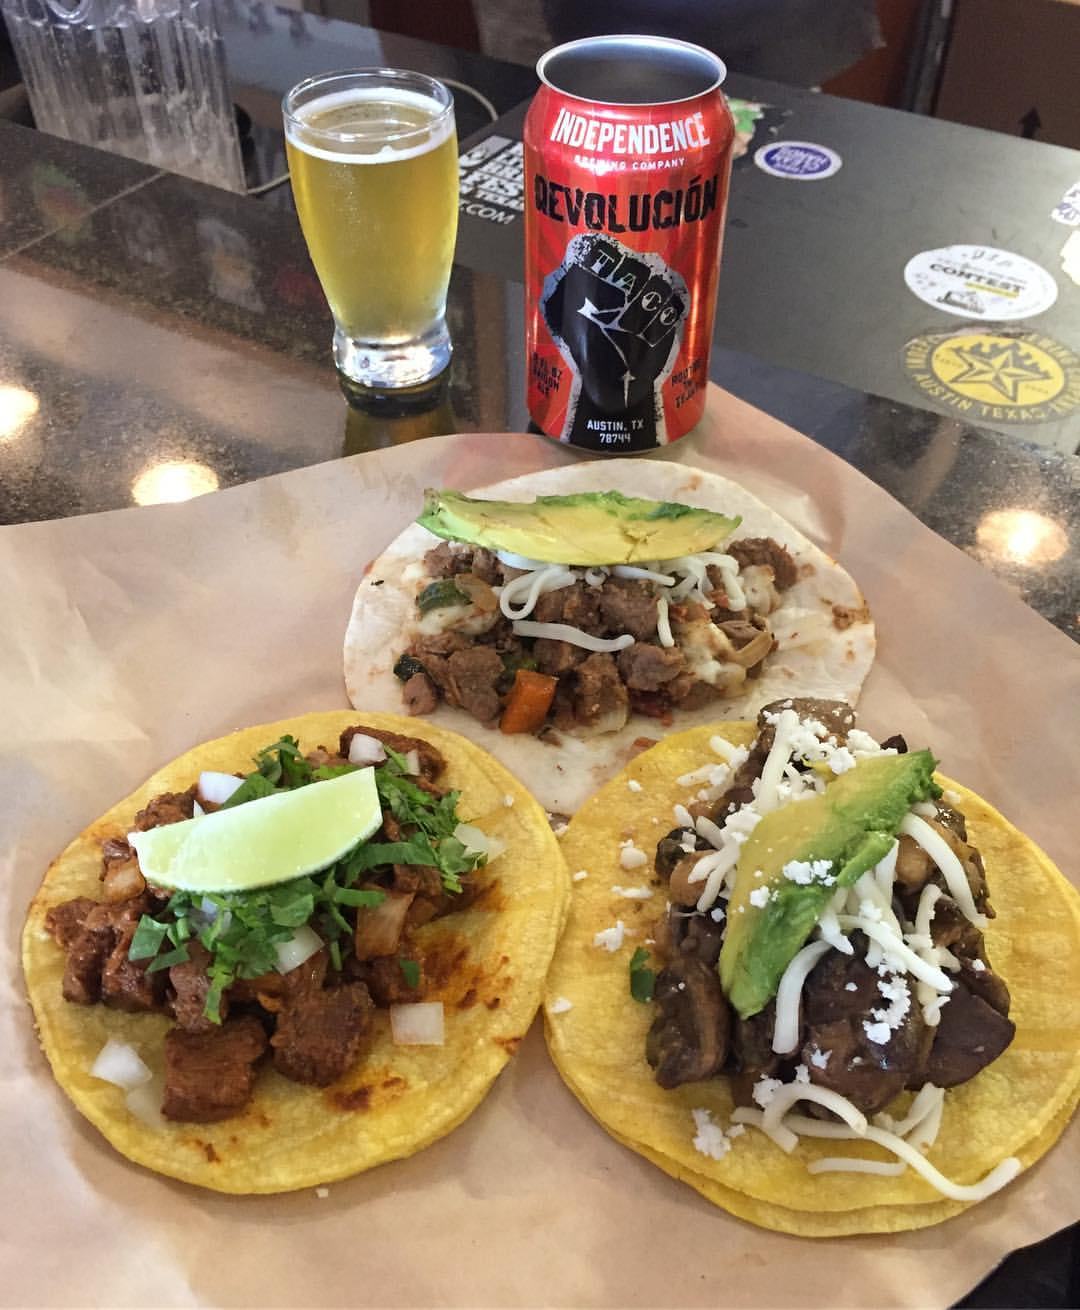 Independence Brewery's Revolucion Saison Ale and tacos